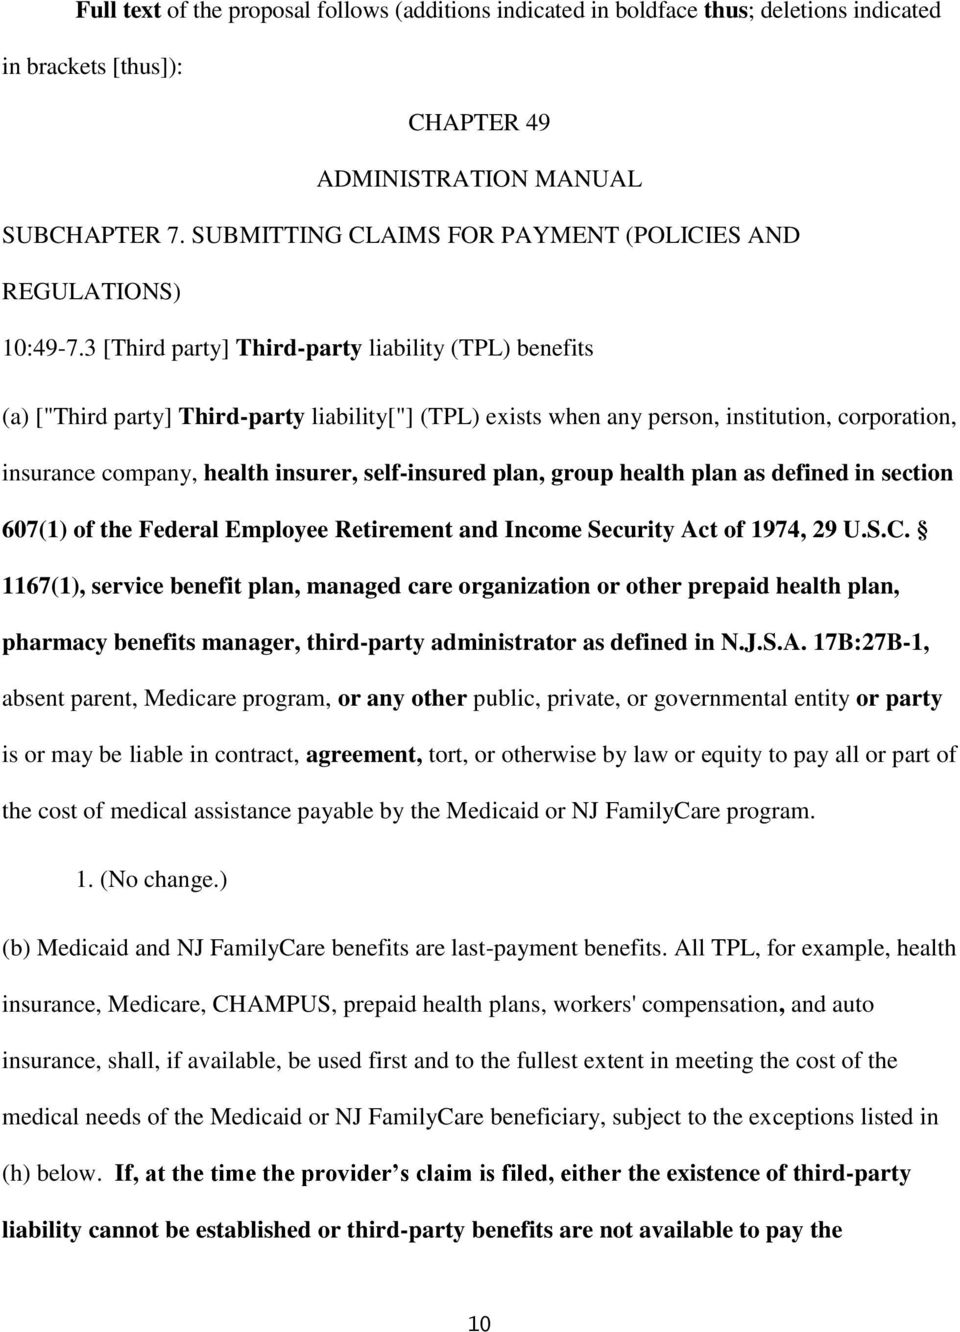 "3 [Third party] Third-party liability (TPL) benefits (a) [""Third party] Third-party liability[""] (TPL) exists when any person, institution, corporation, insurance company, health insurer,"